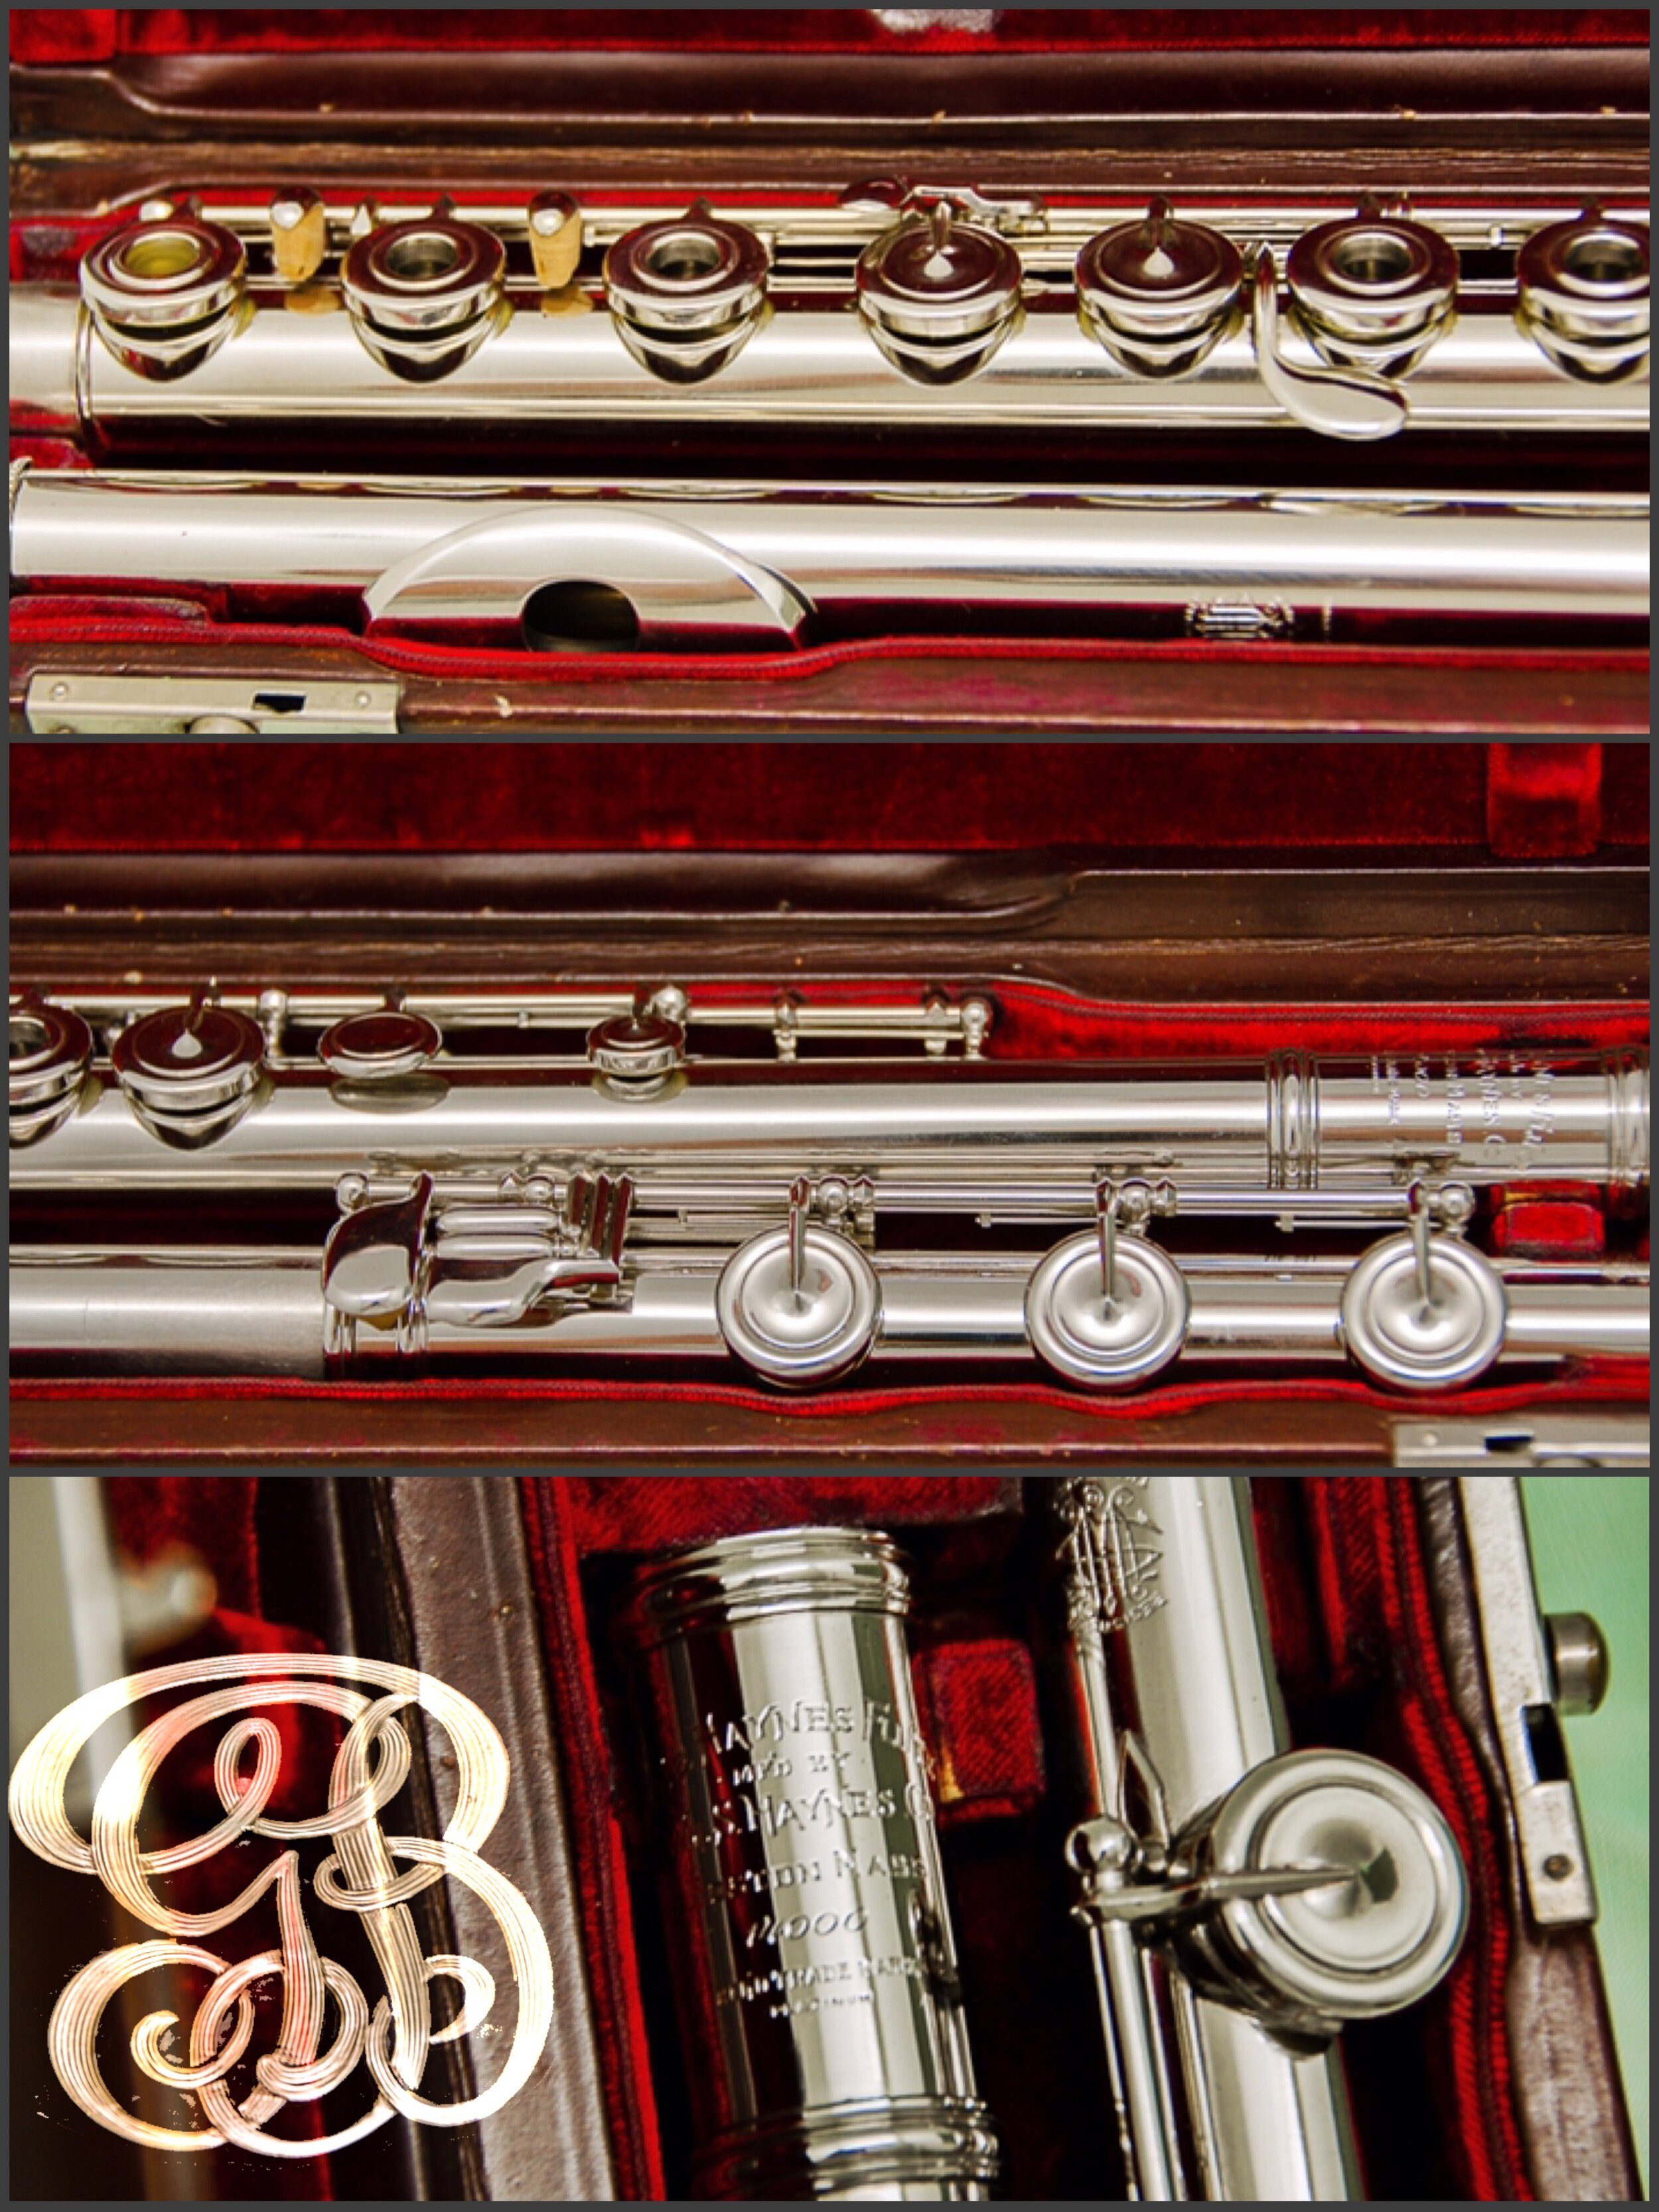 1935 – For reasons of superstition - there are no #13xxx flutes made - Haynes production jumps from #12999 to #14000. Many #xx013 serial numbered flutes were also skipped during this time.1935 – Platinum Haynes Flute #14000 - In 1935 Georges Barrère commissioned a platinum flute #14000 from Wm. S. Haynes Co. This flute would be the world's very first all-platinum instrument. To commemorate the premiere of this important flute, Edgard Varèse´ wrote 'Density 21.5' which Barrère premiered on the debut concert of this flute. 21.5 is the density of platinum.